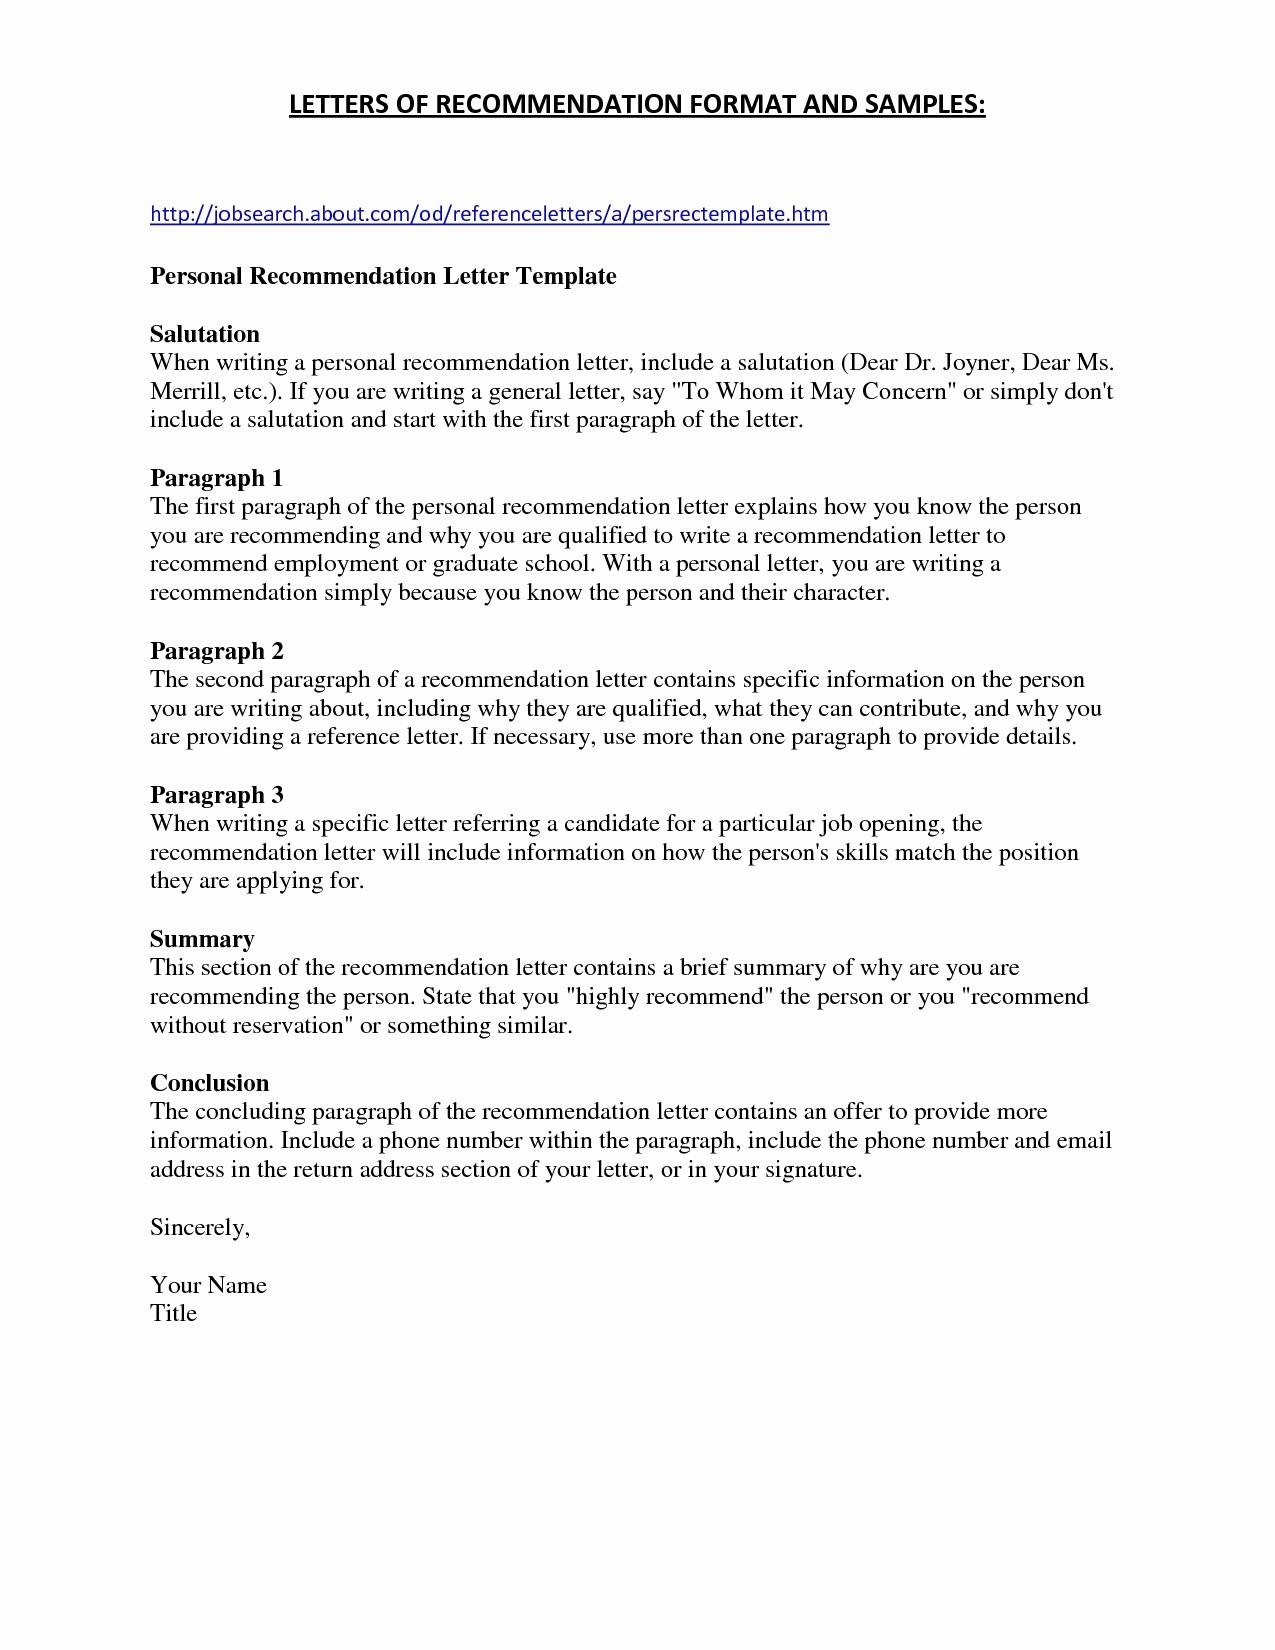 Rental Reference Letter Template - How to Write A Cover Letter for A Rental Application